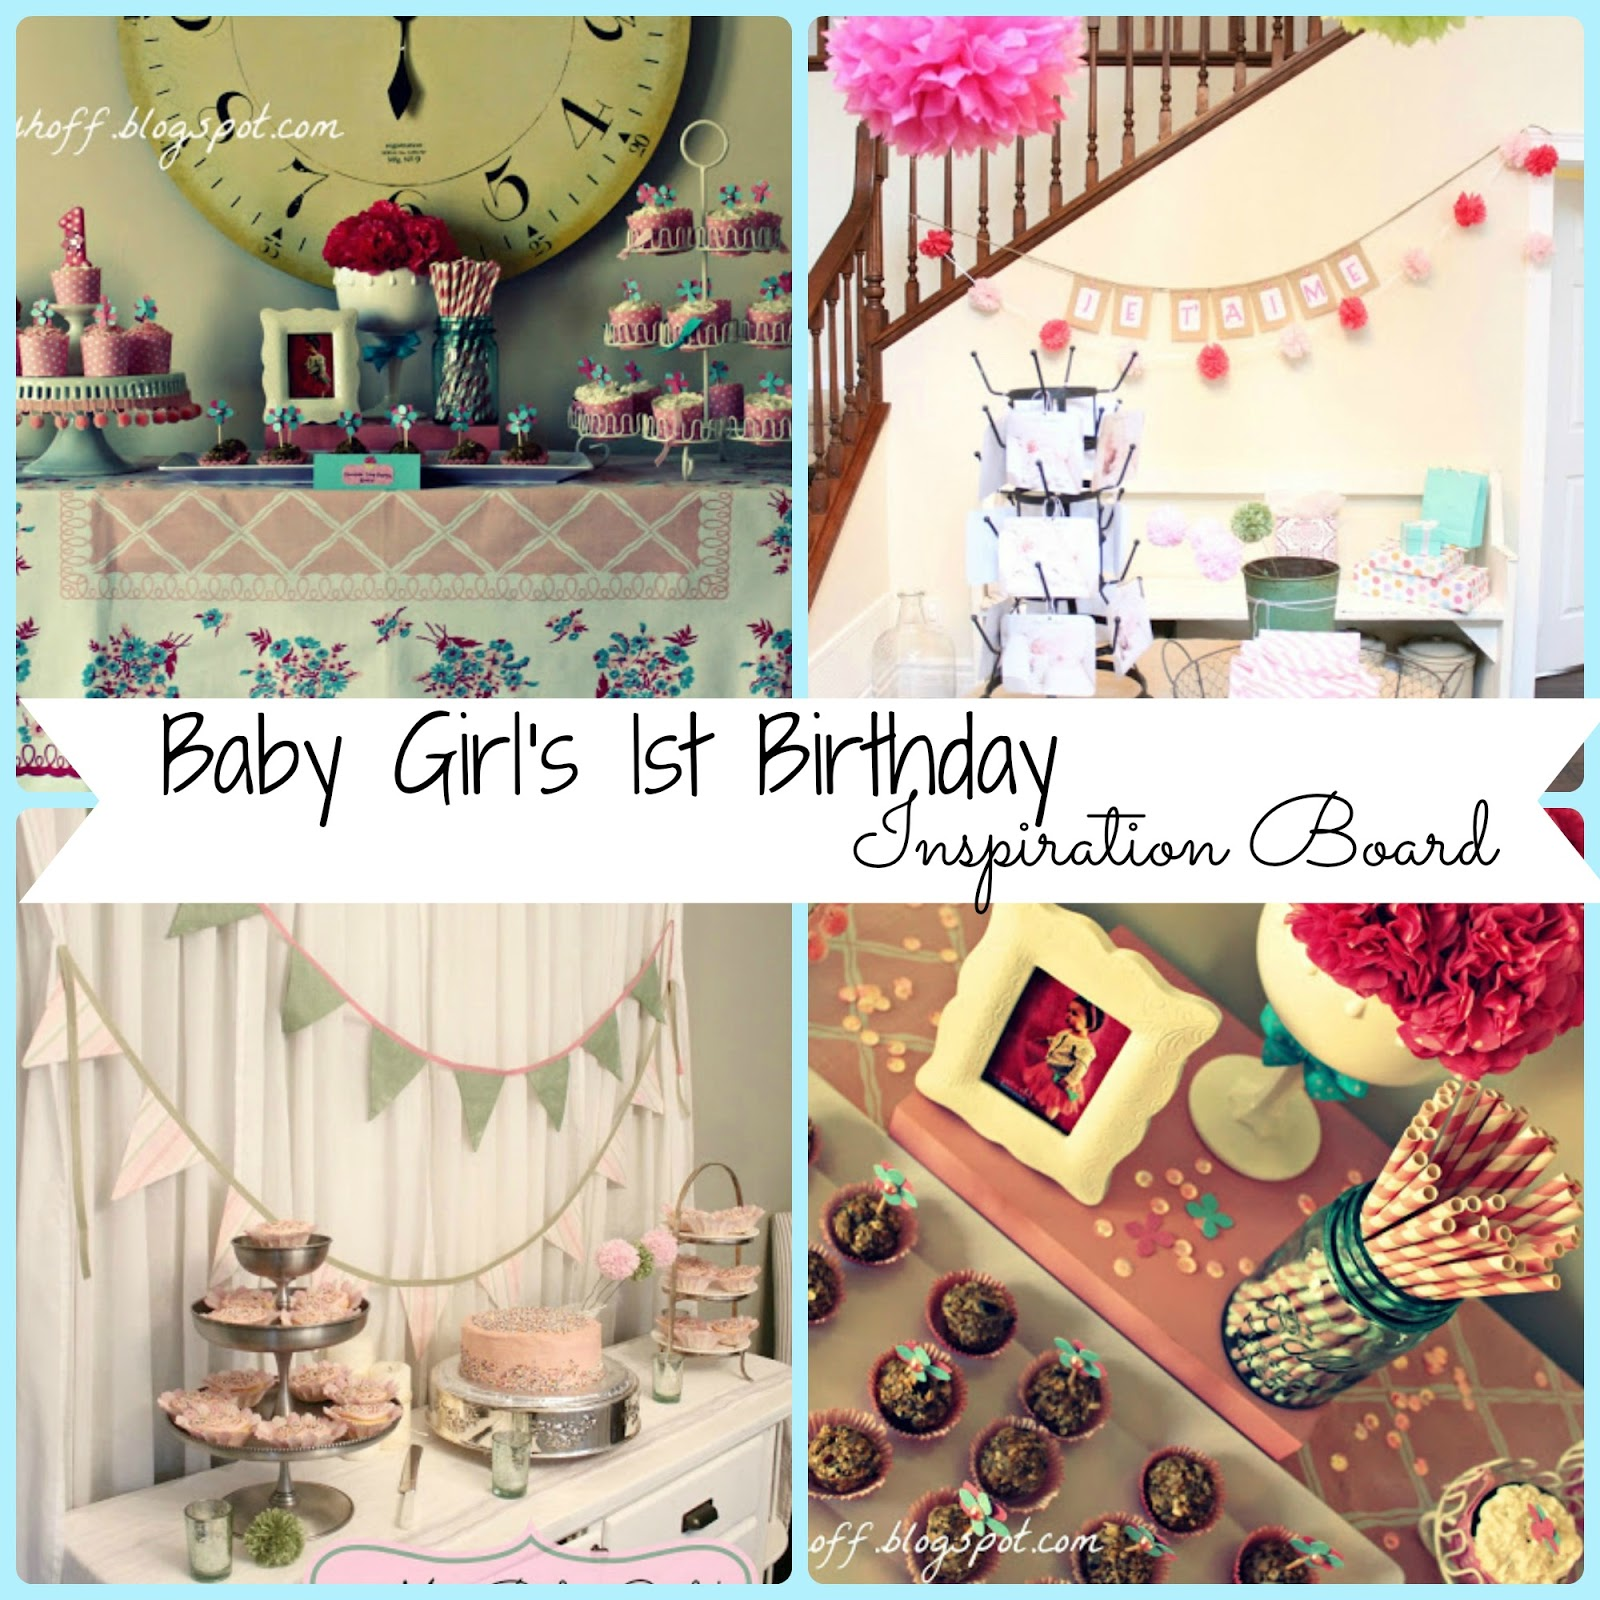 Birthday Themes For Baby Girl First Birthday Image Inspiration